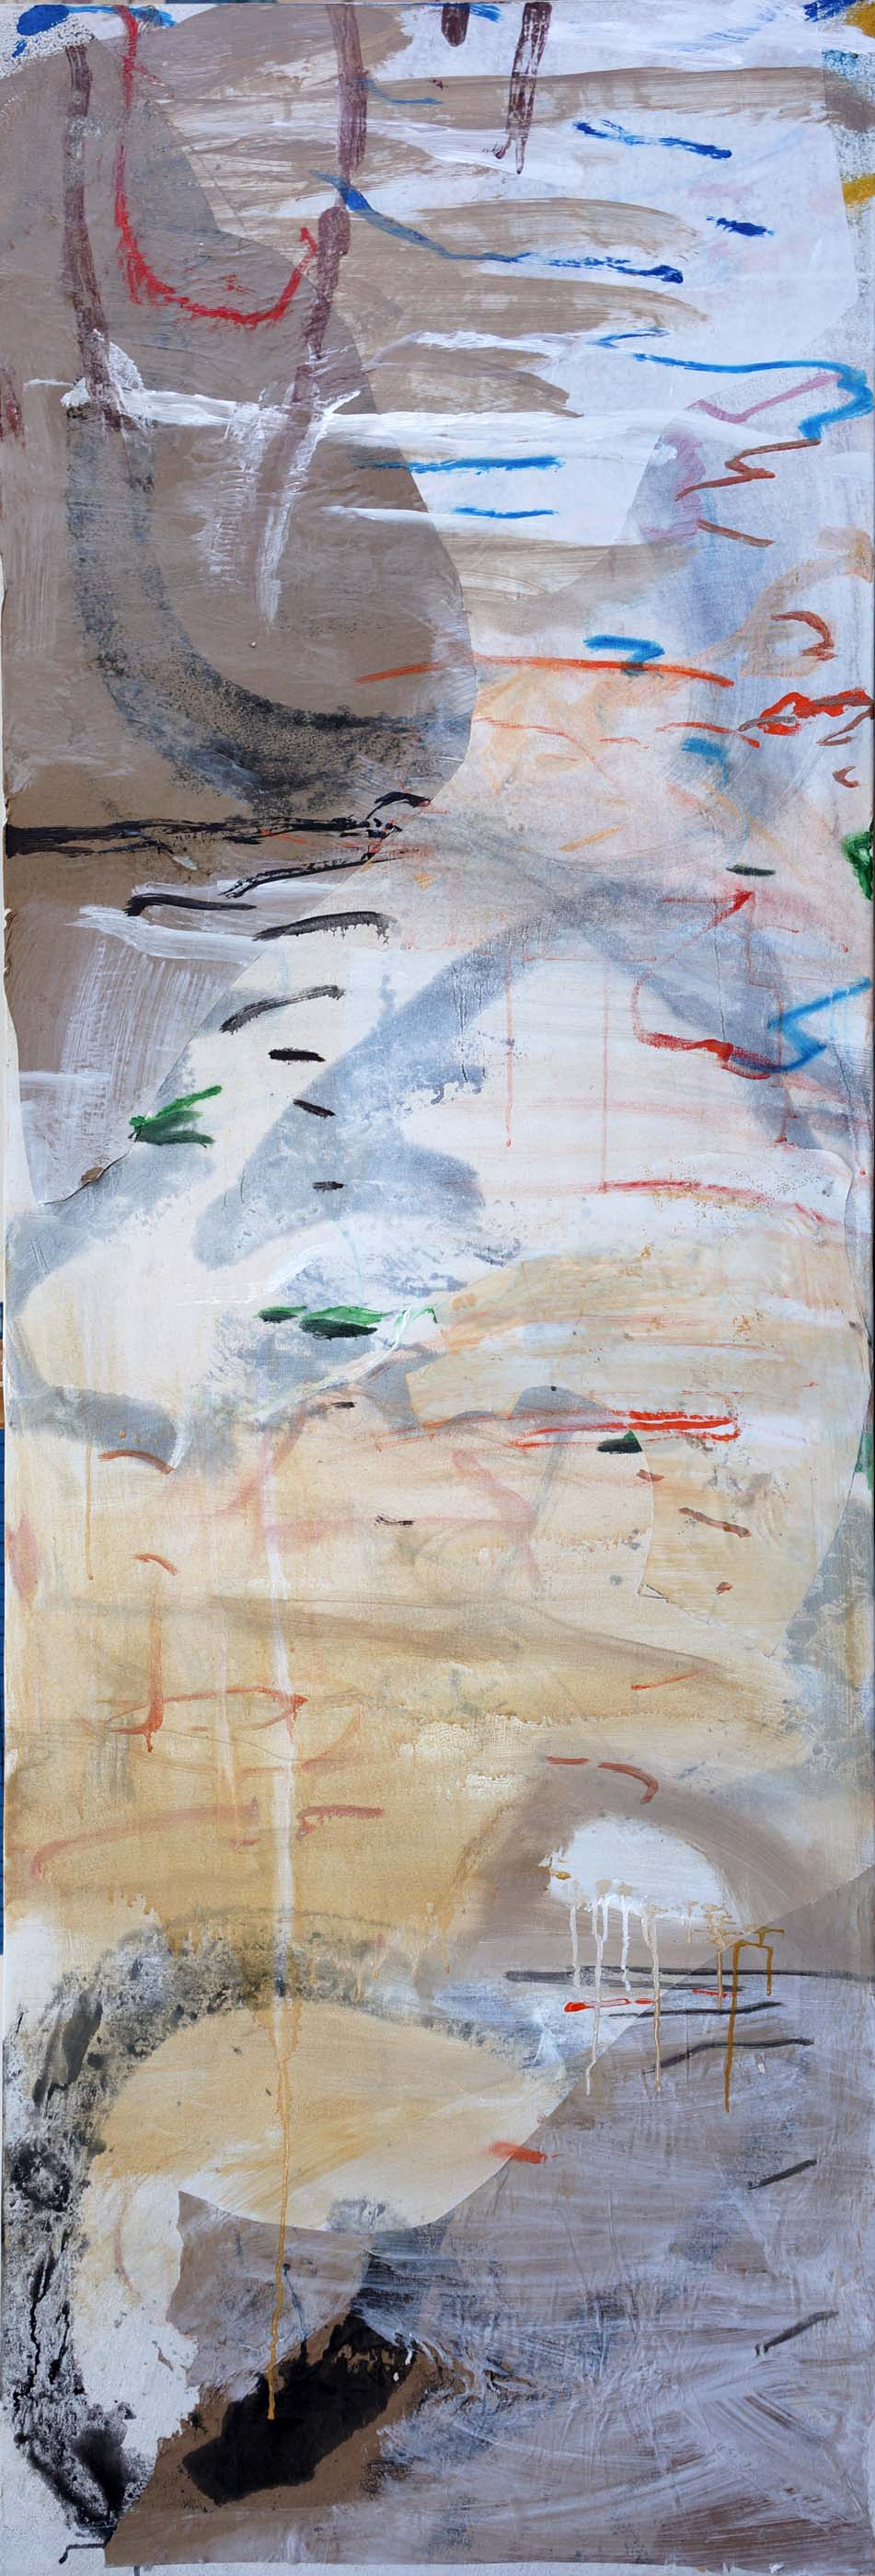 "stage 1:  autumn creek   78x25.5""  acrylic & collaged paper on canvas"